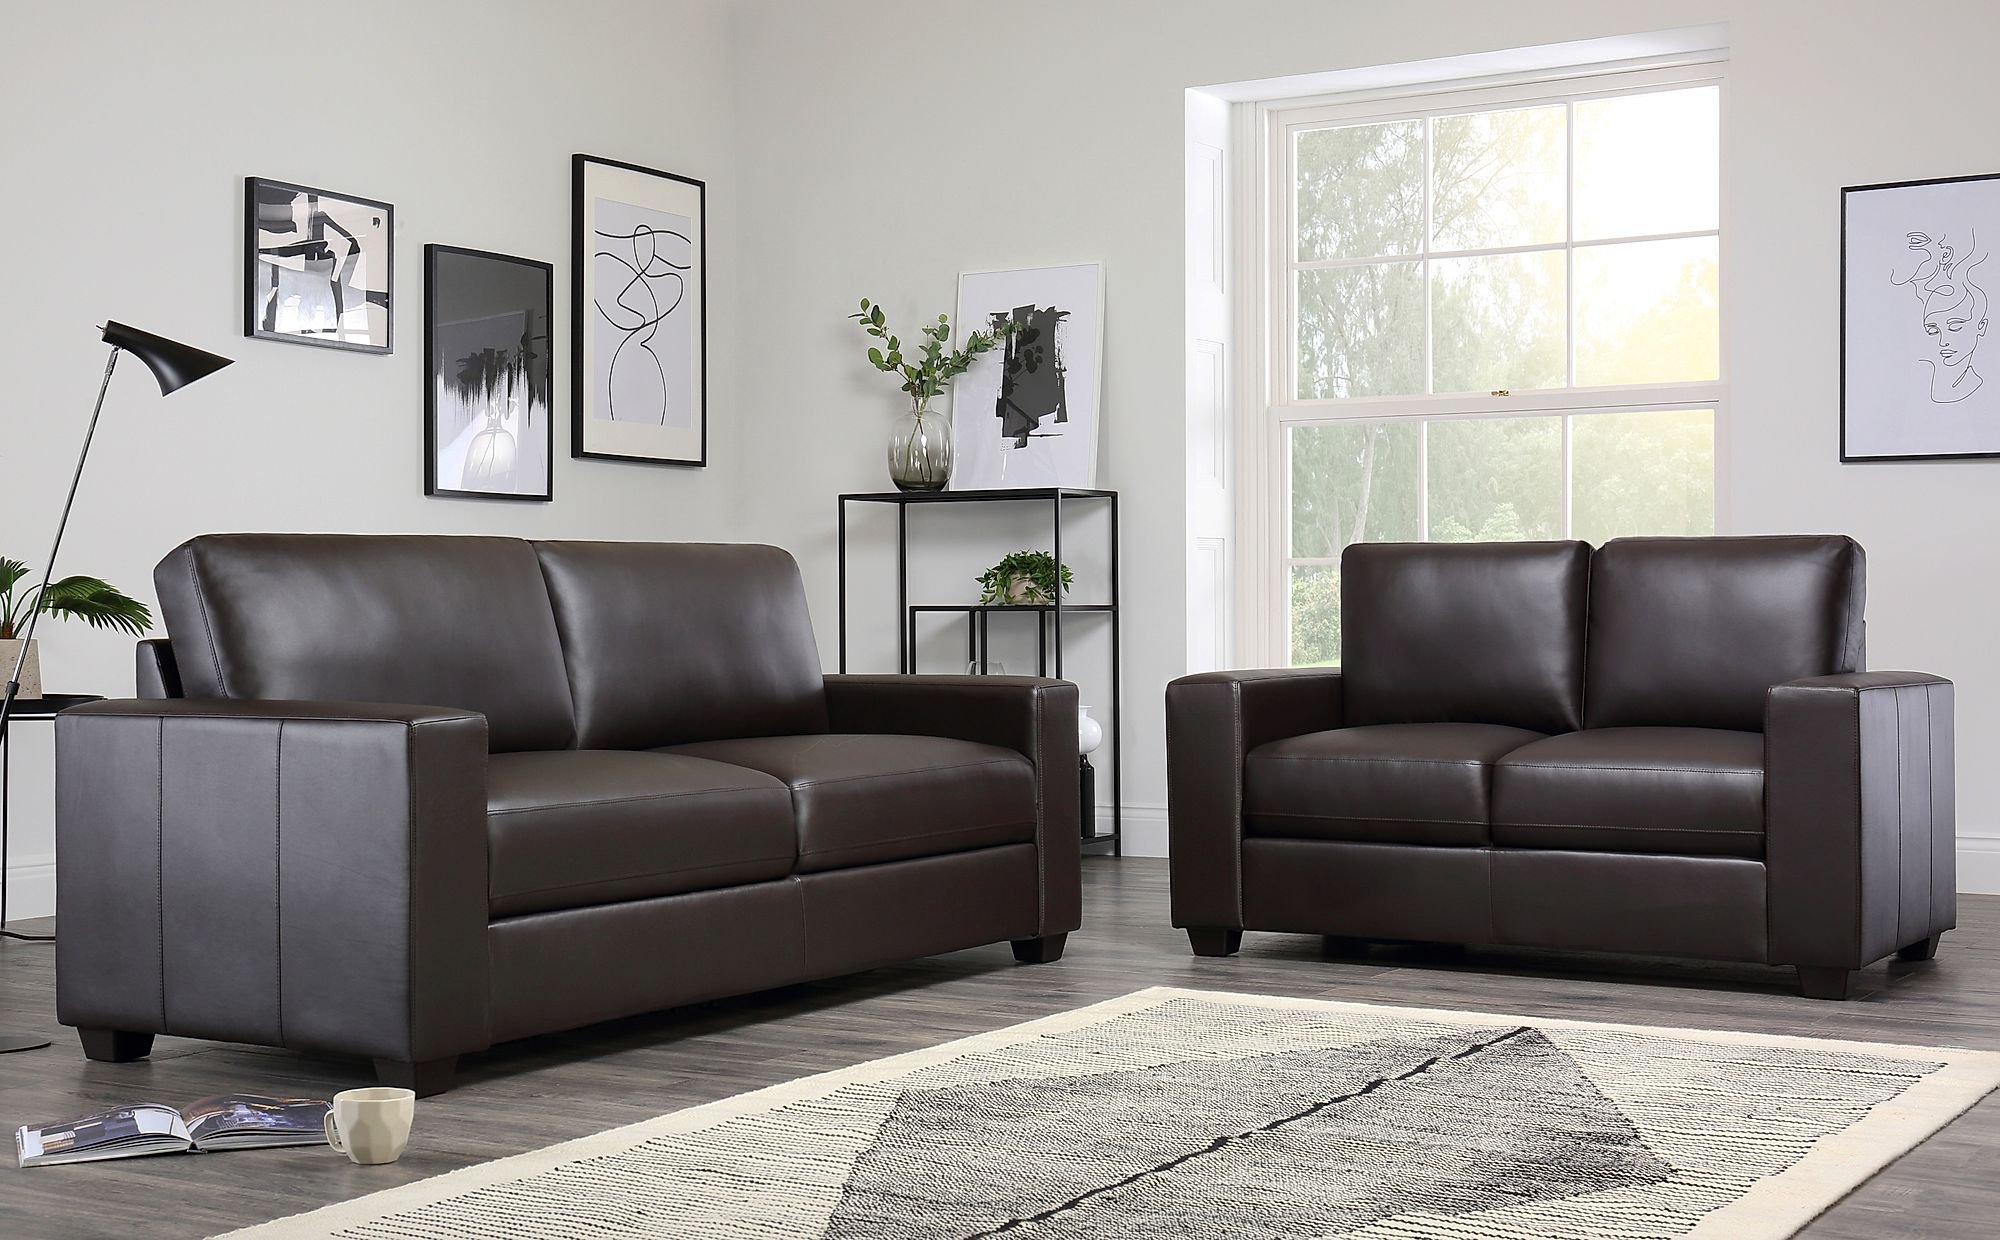 Peachy Mission Brown Leather 3 2 Seater Sofa Set Andrewgaddart Wooden Chair Designs For Living Room Andrewgaddartcom